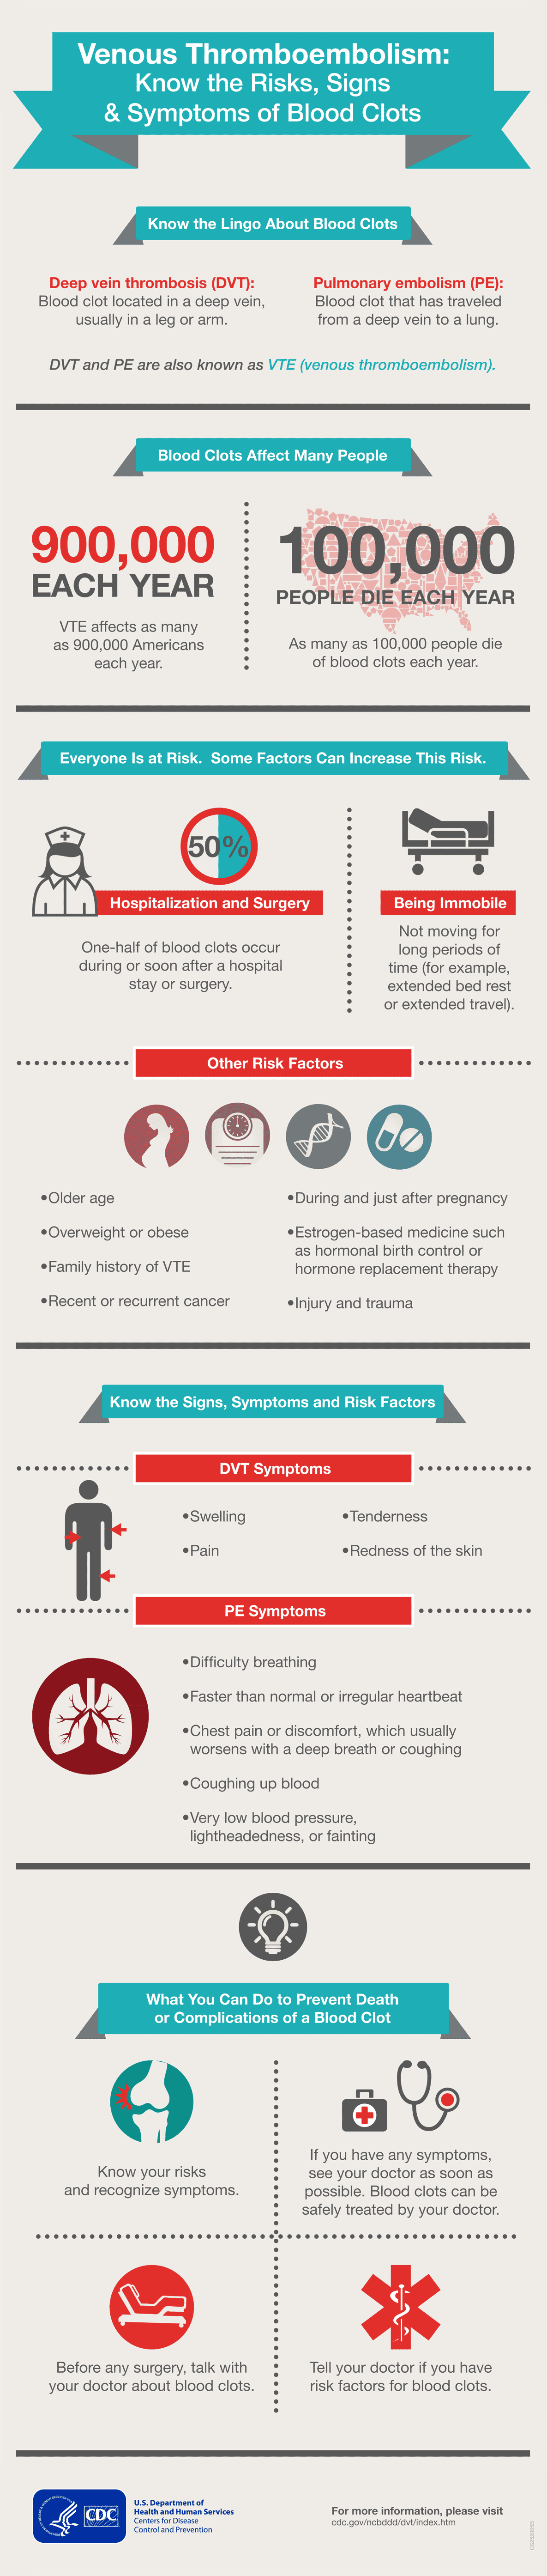 VTE Know the Risks Signs and Symptoms Infographic